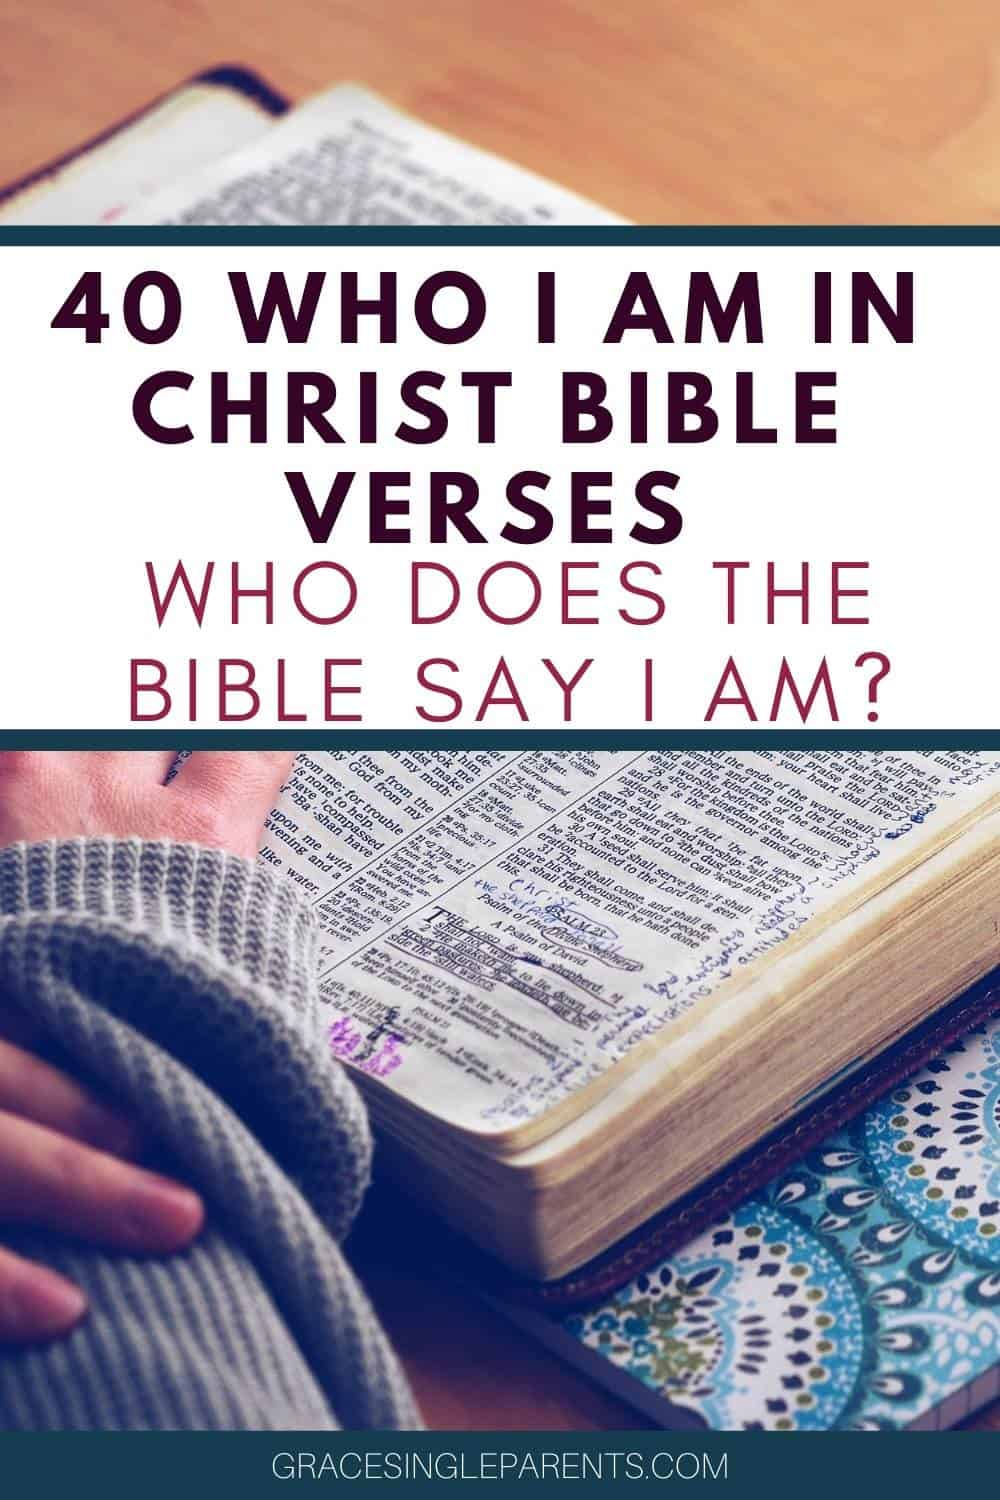 40 Who I am In Christ Bible Verses You Can Cling To